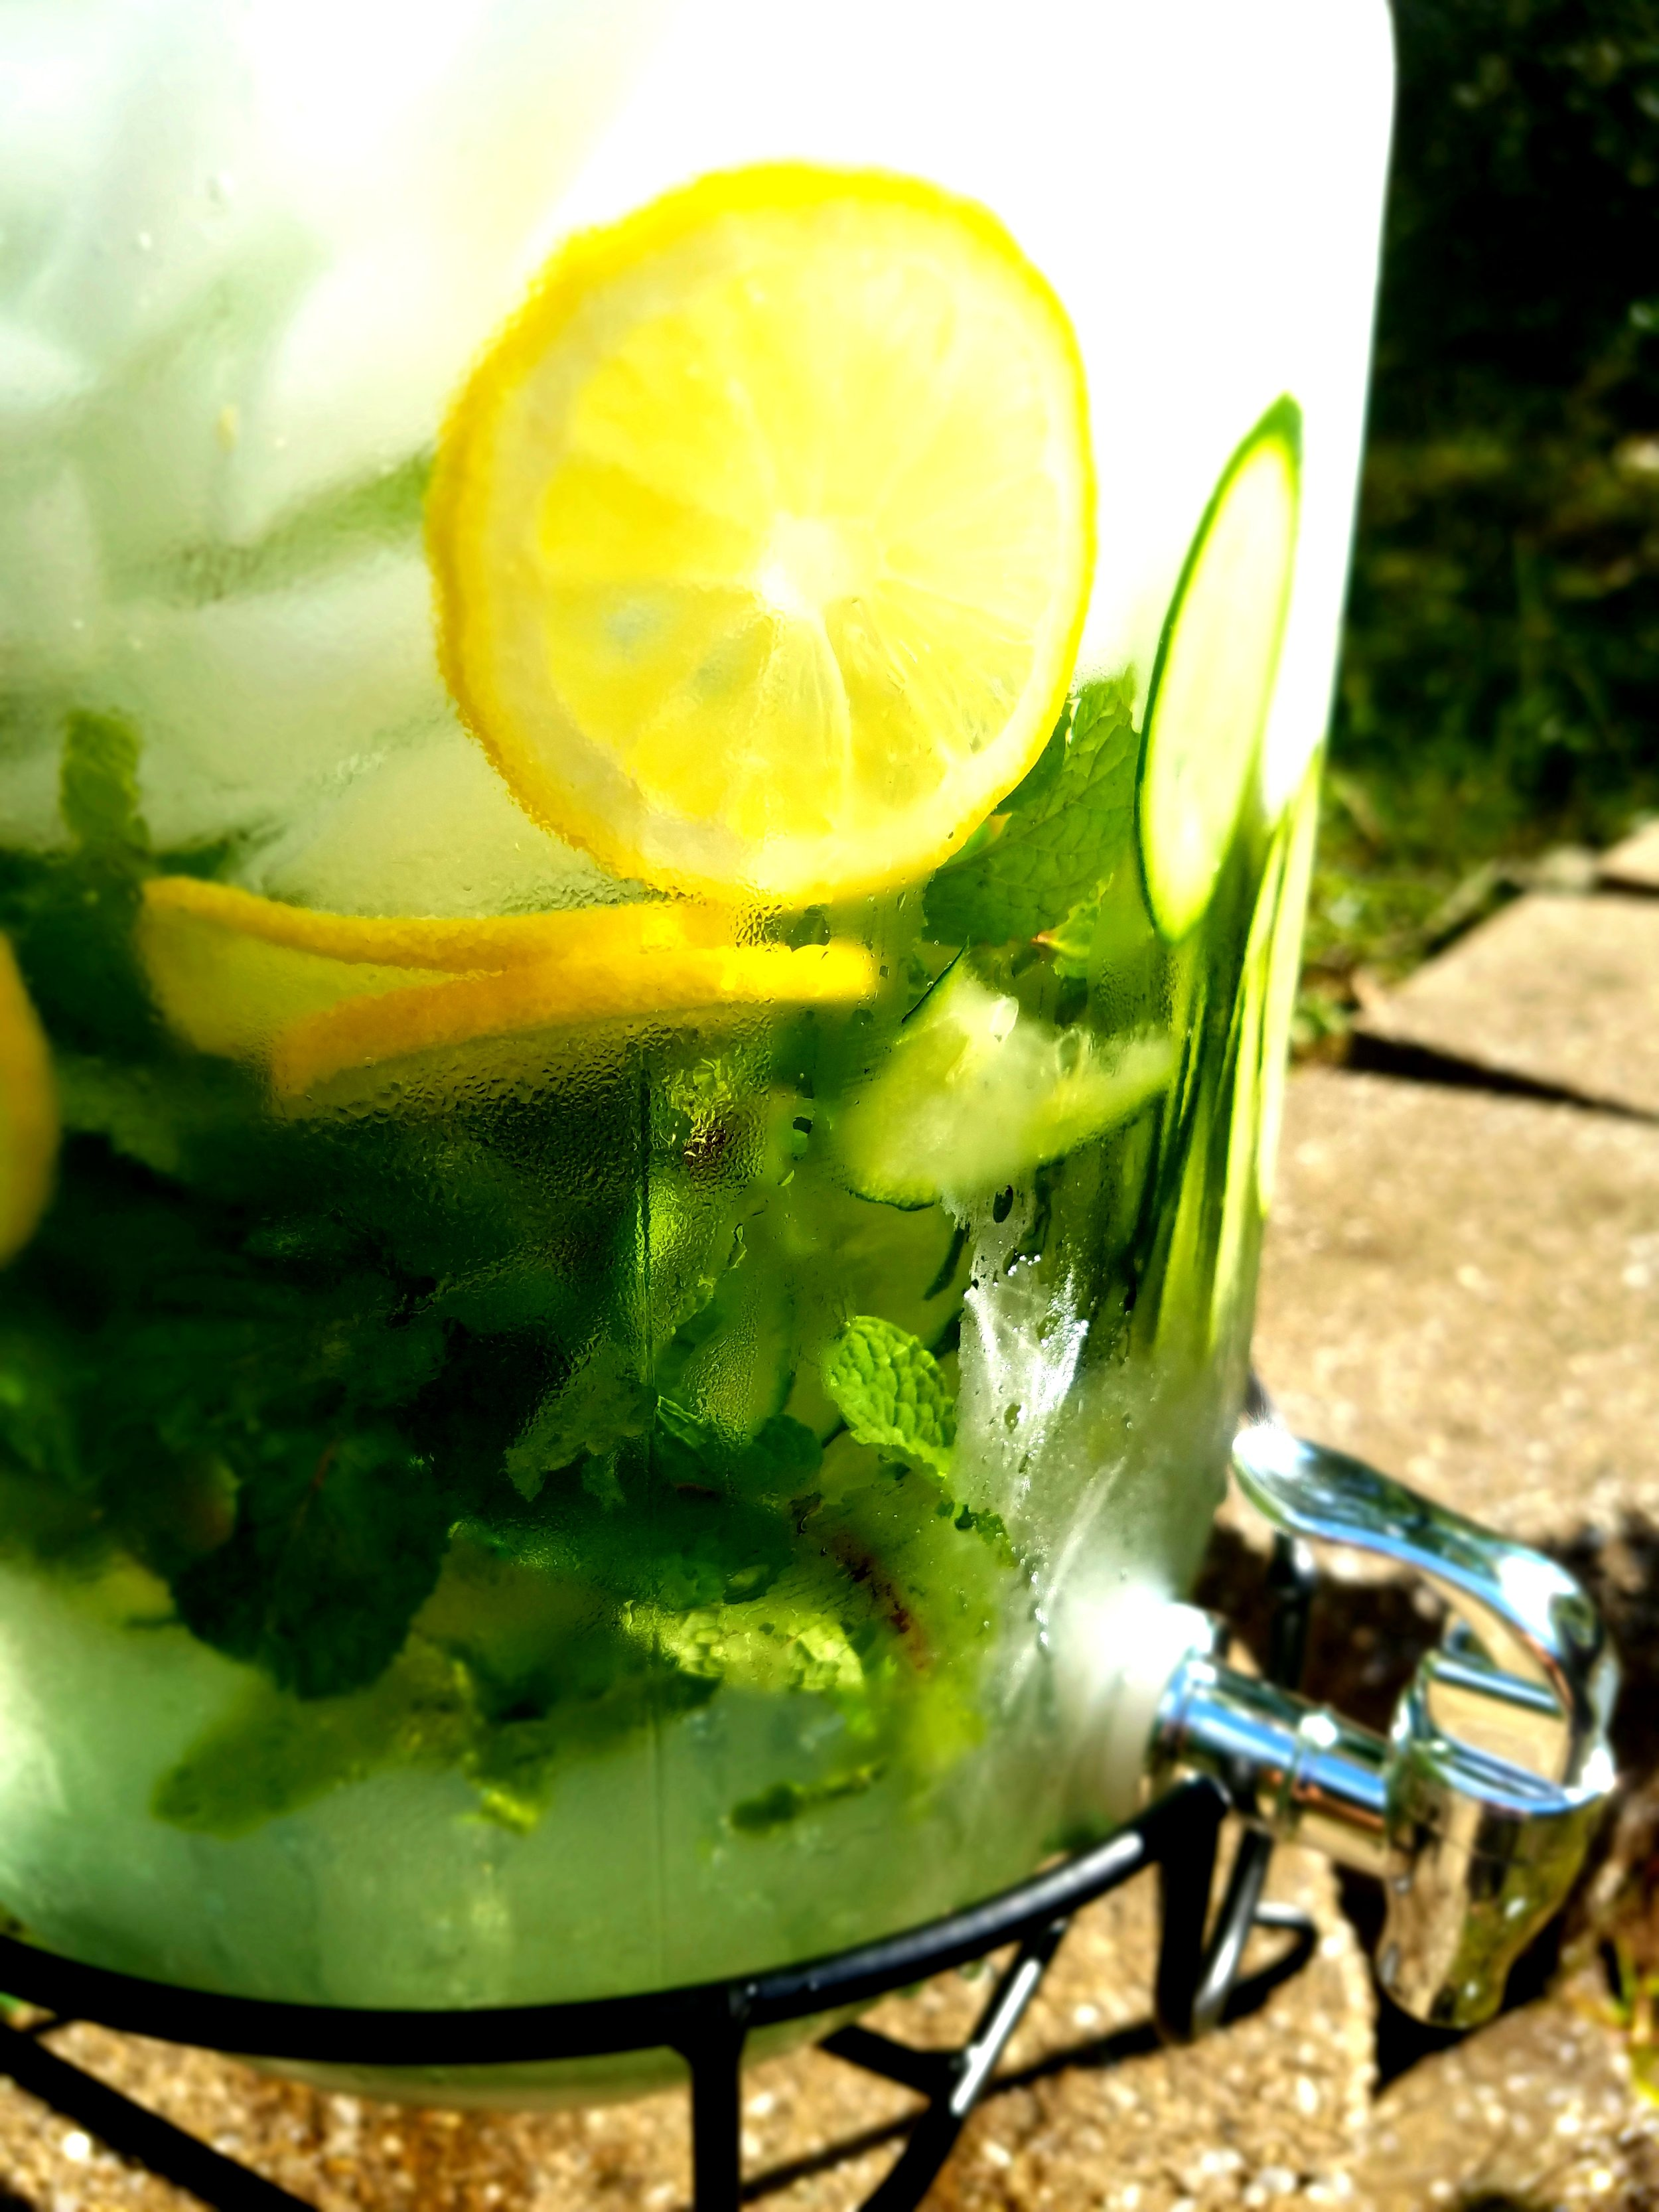 Spring Water dispenser infused with Fresh Herbs & Fruits